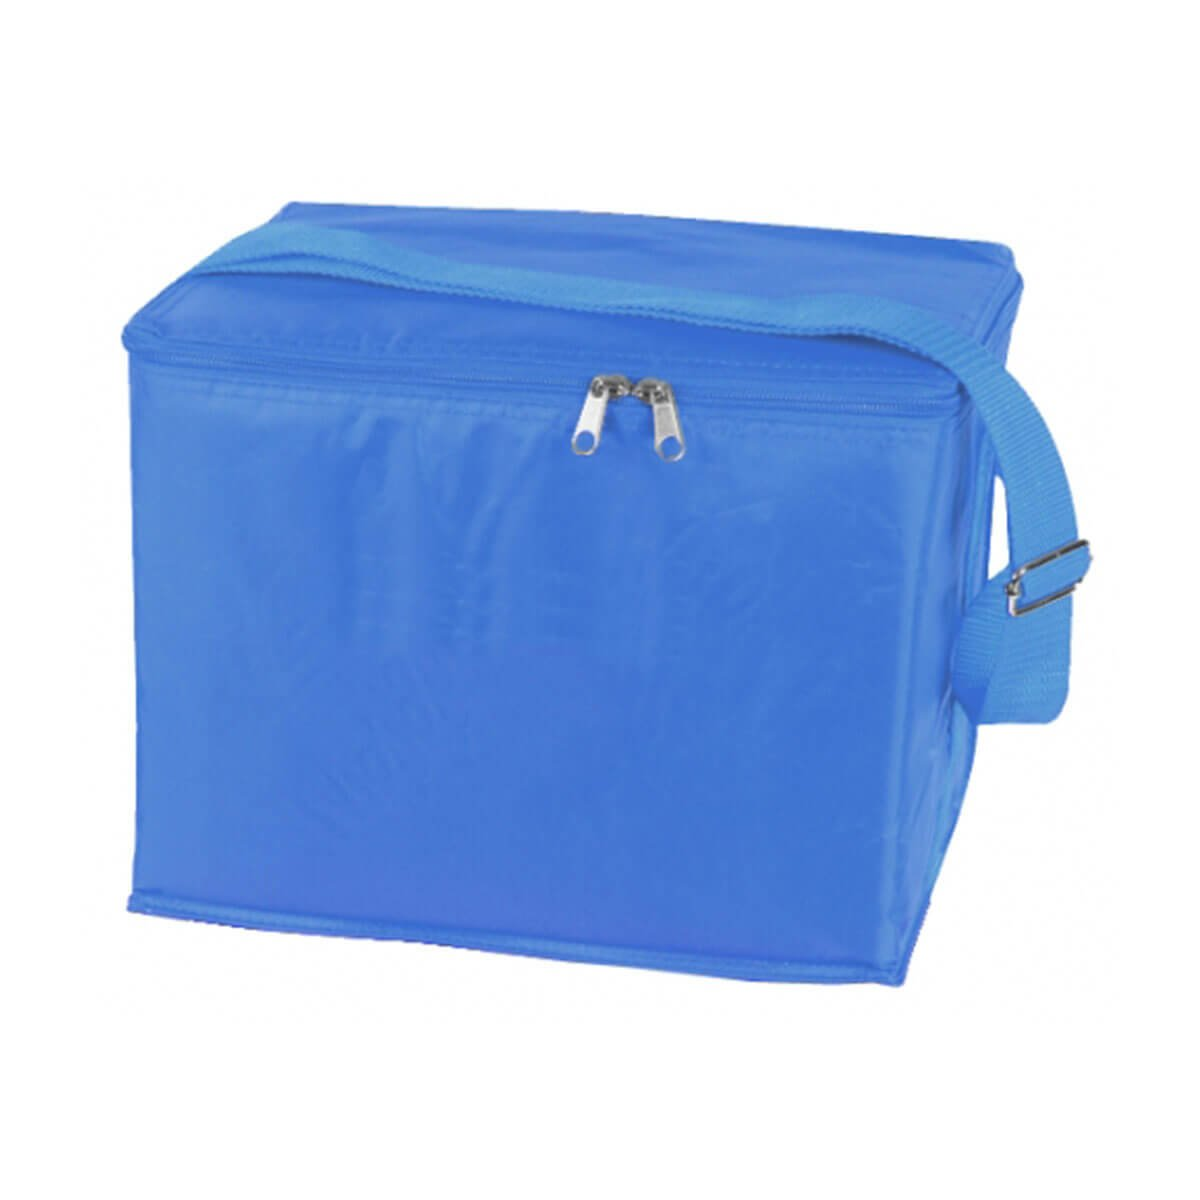 6 Can Cooler Bag-Royal